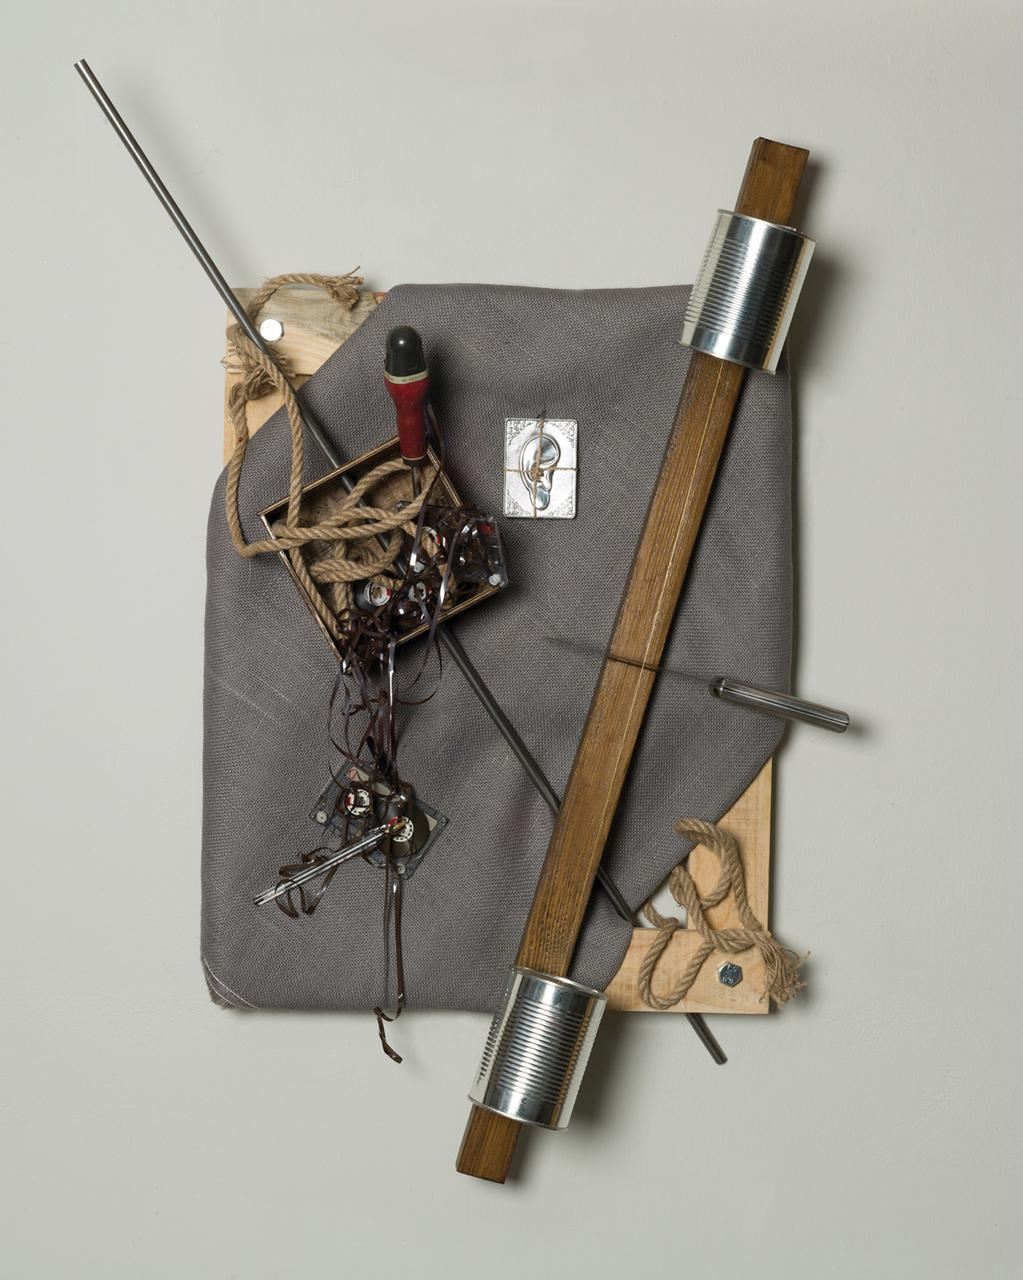 Voice Over, 47 cm x 60 cm x 17 cm, wood, iron, screwdriver, pen, fabric, cleaver, cassettes, old record, juten, rope, aluminium, offering, 2018